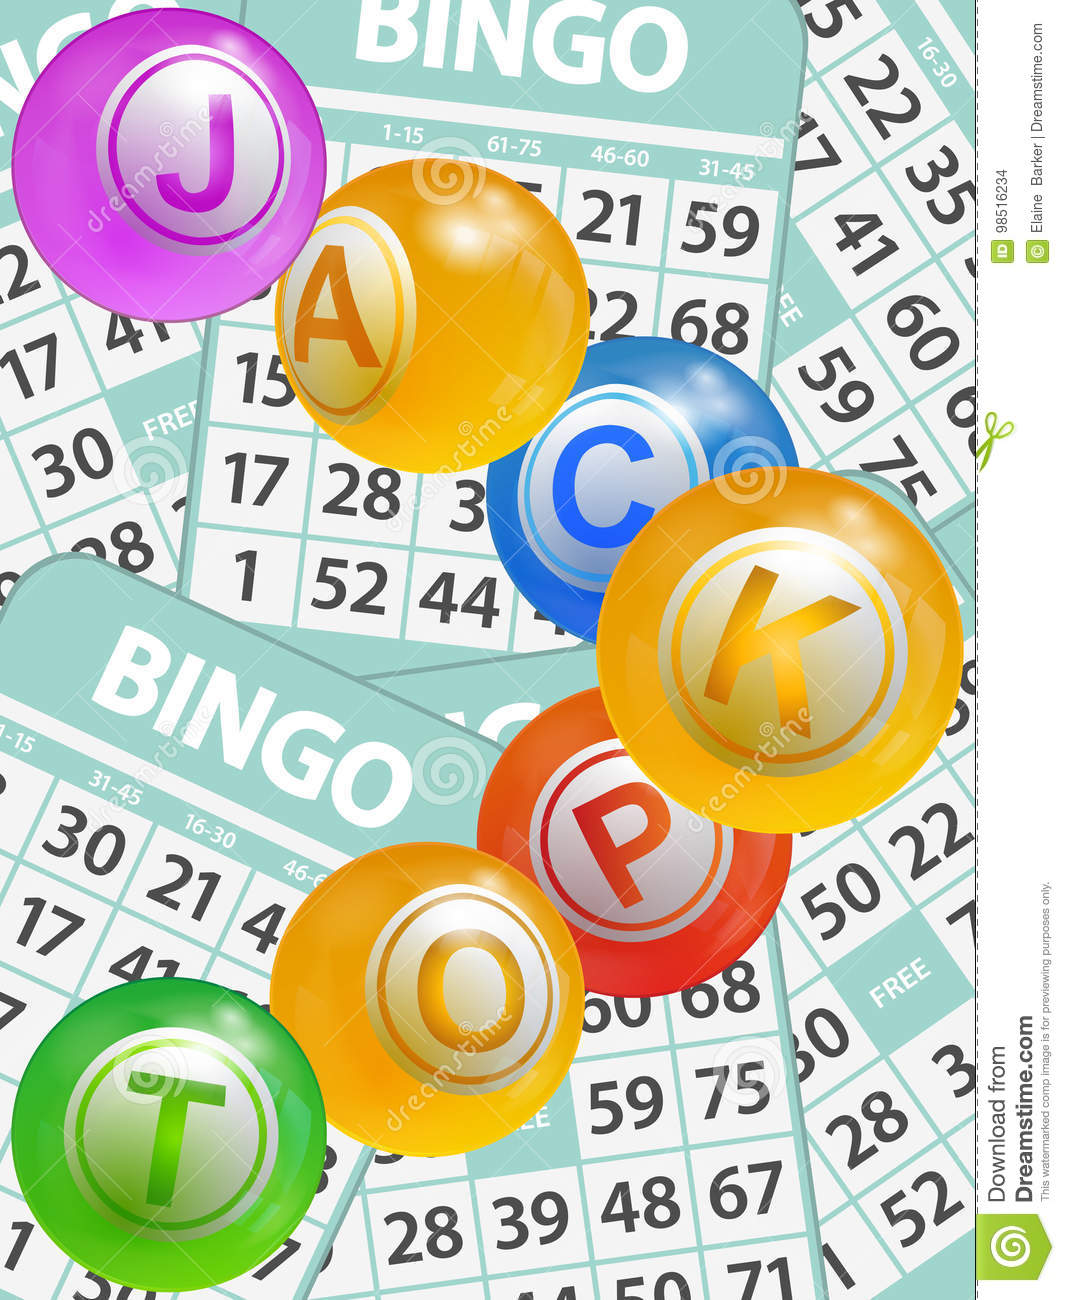 Bingo Jackpot Balls Over Cards Background Stock